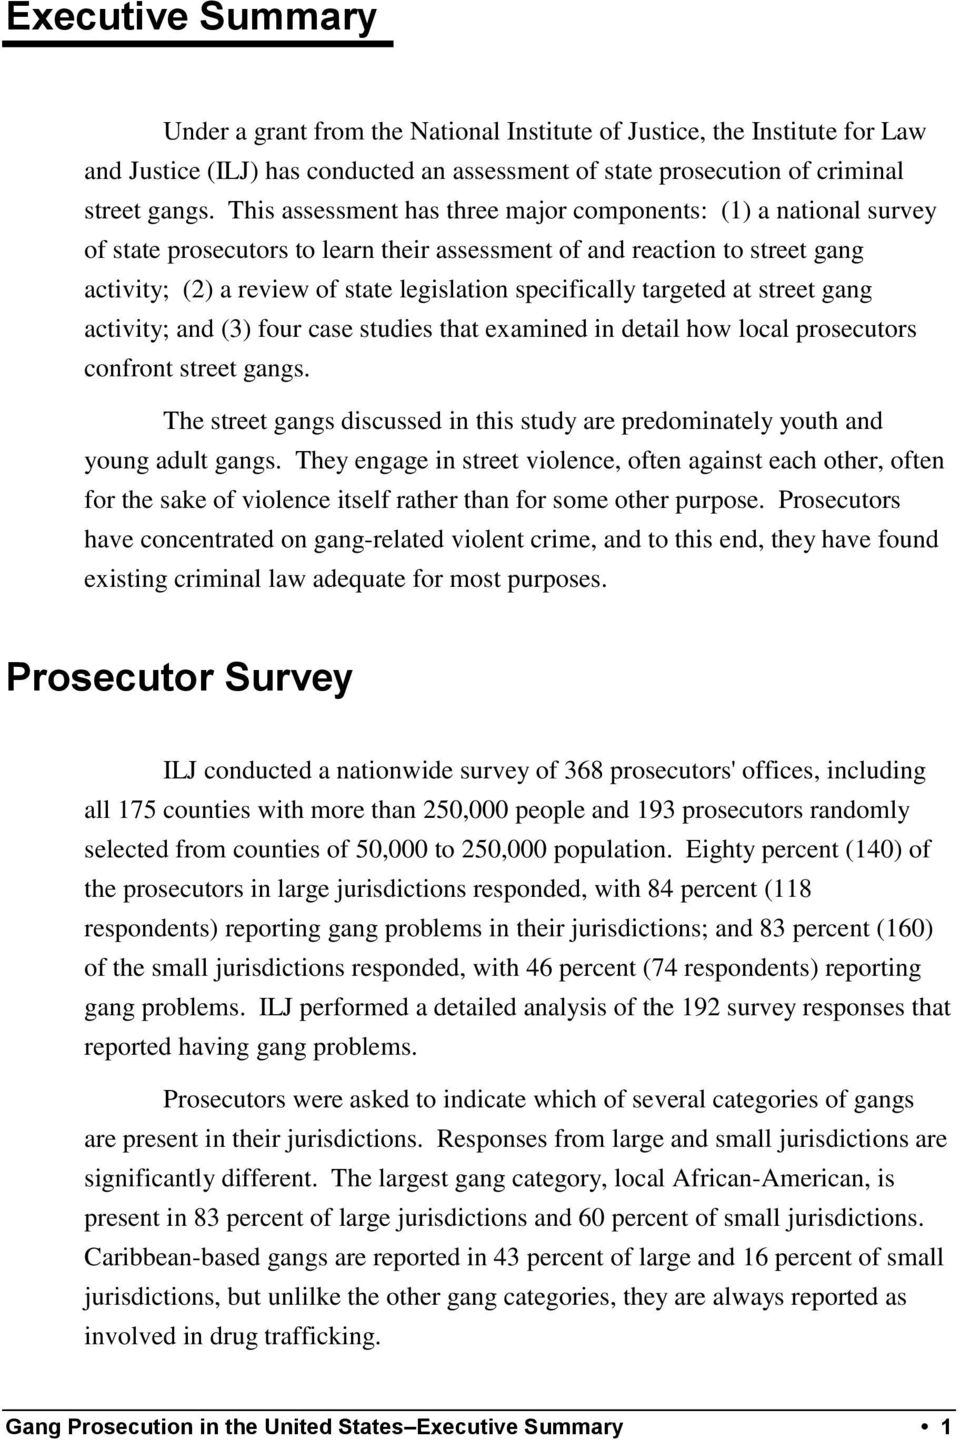 specifically targeted at street gang activity; and (3) four case studies that examined in detail how local prosecutors confront street gangs.